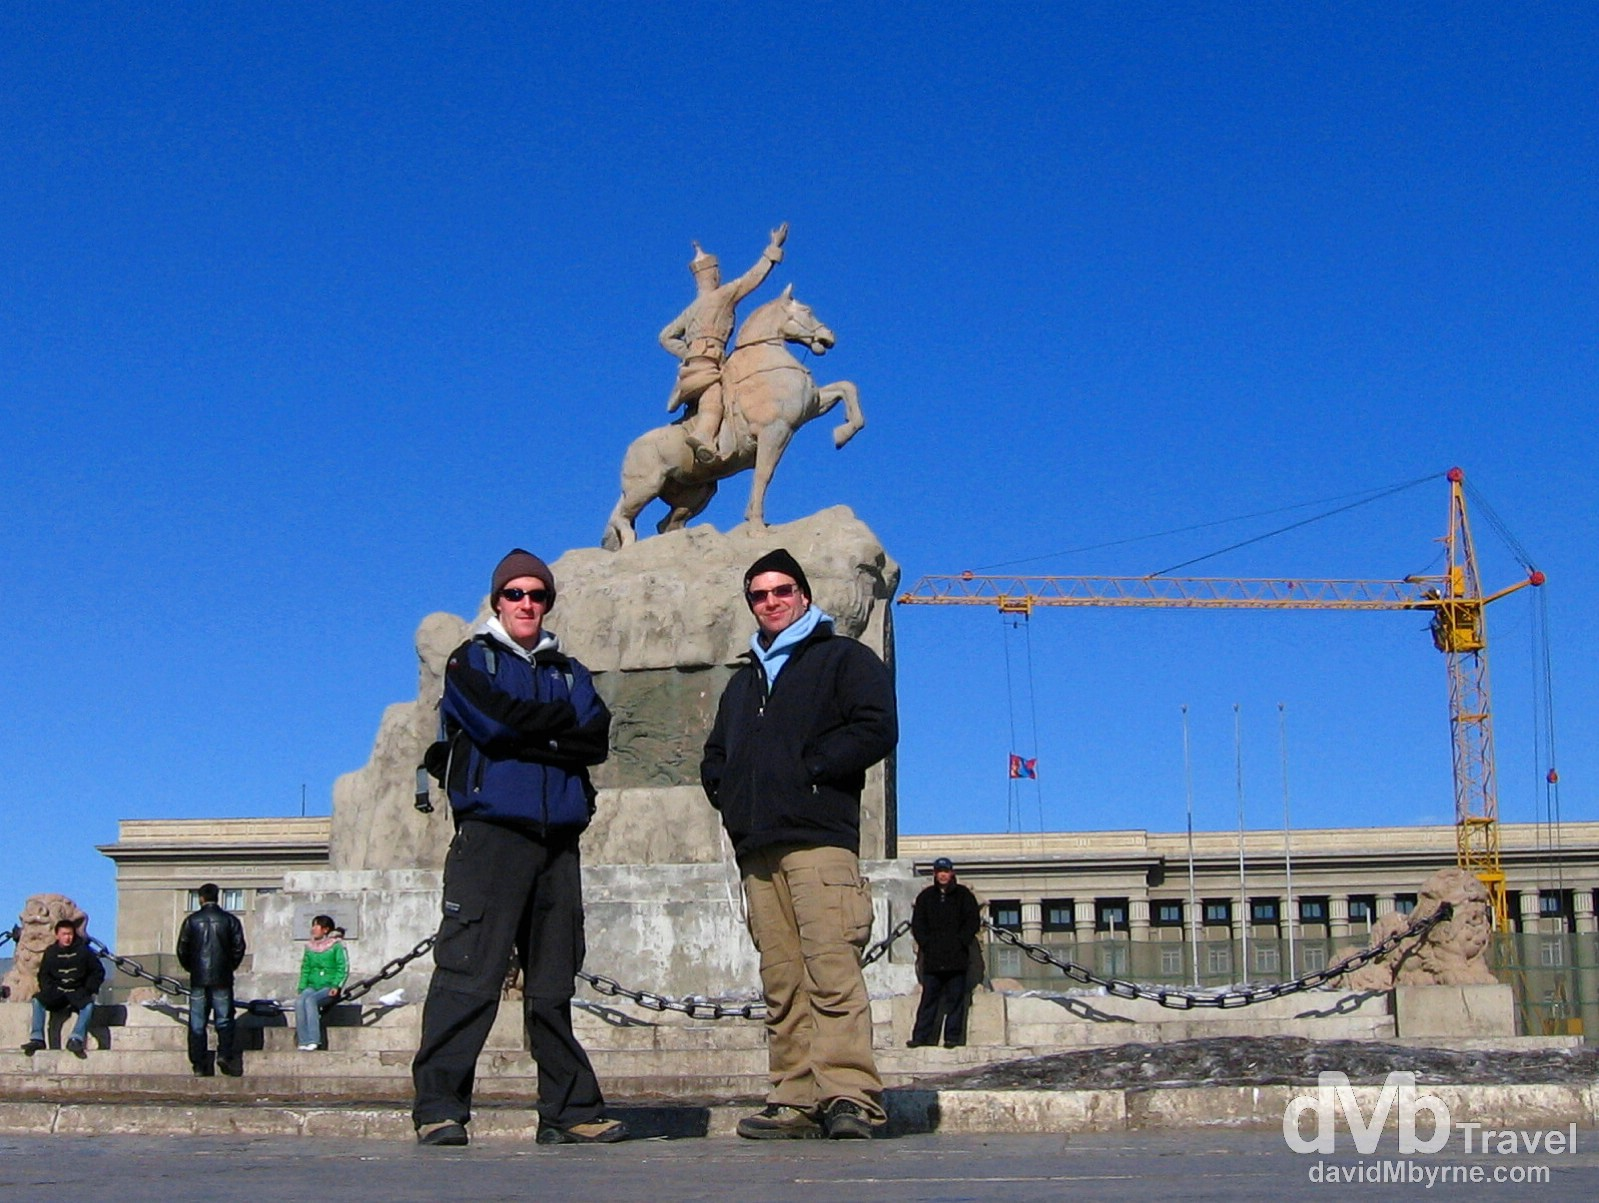 My travelling buddy Henk (right) & I and in Sükhbaatar Square, Ulan Bator, Mongolia. February 16, 2006.